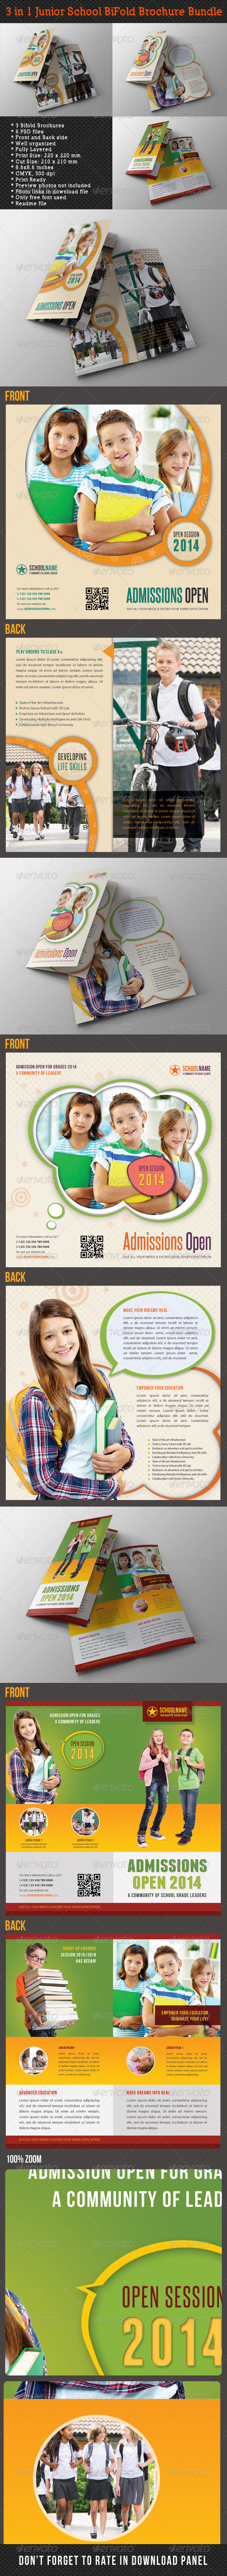 GraphicRiver 3 in 1 Junior School Promotion Brochure Bundle 02 7929654